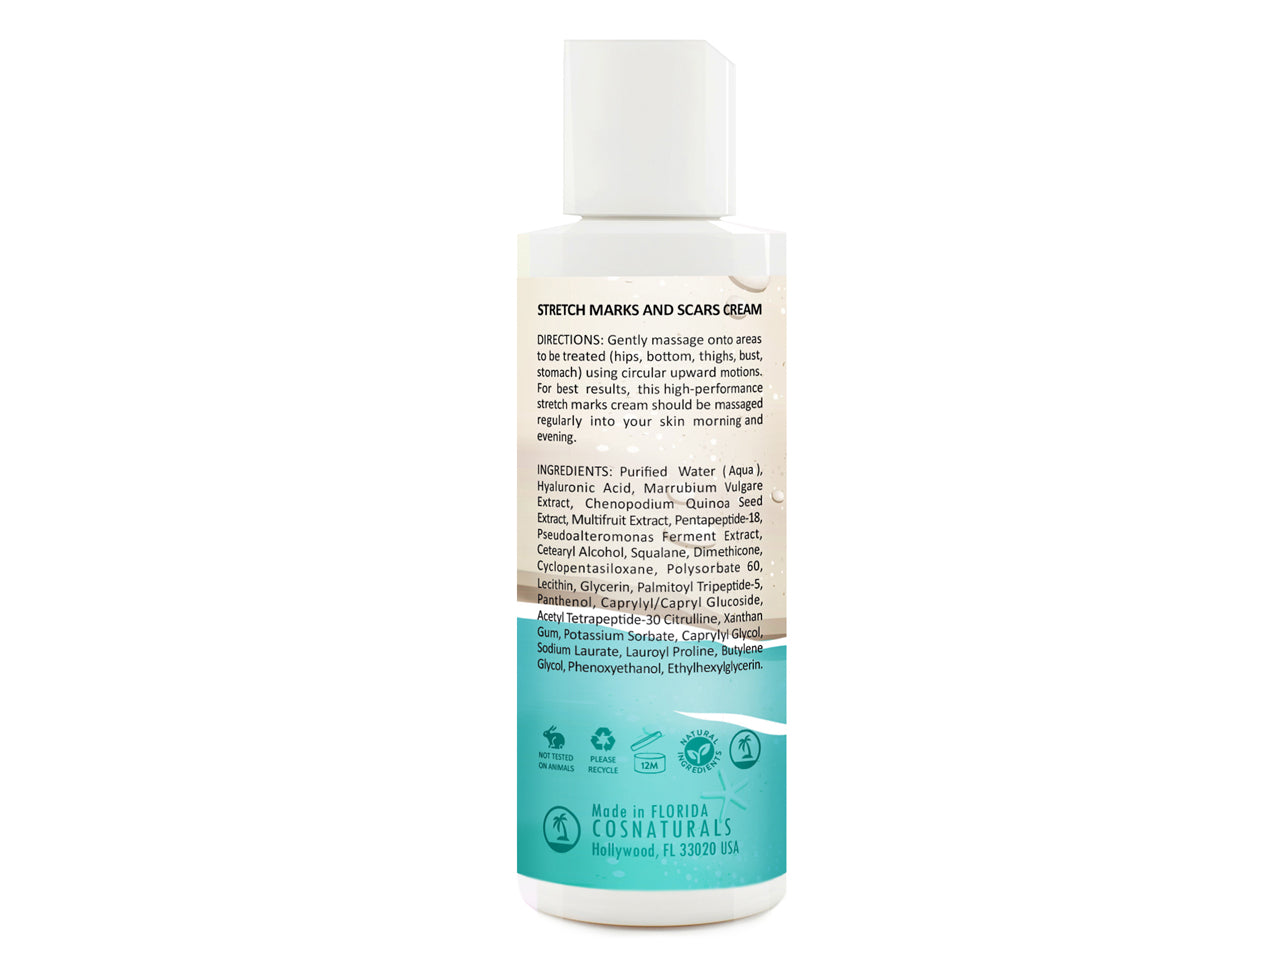 STRETCH MARKS AND SCARS CREAM, 4 fl oz / 120ml